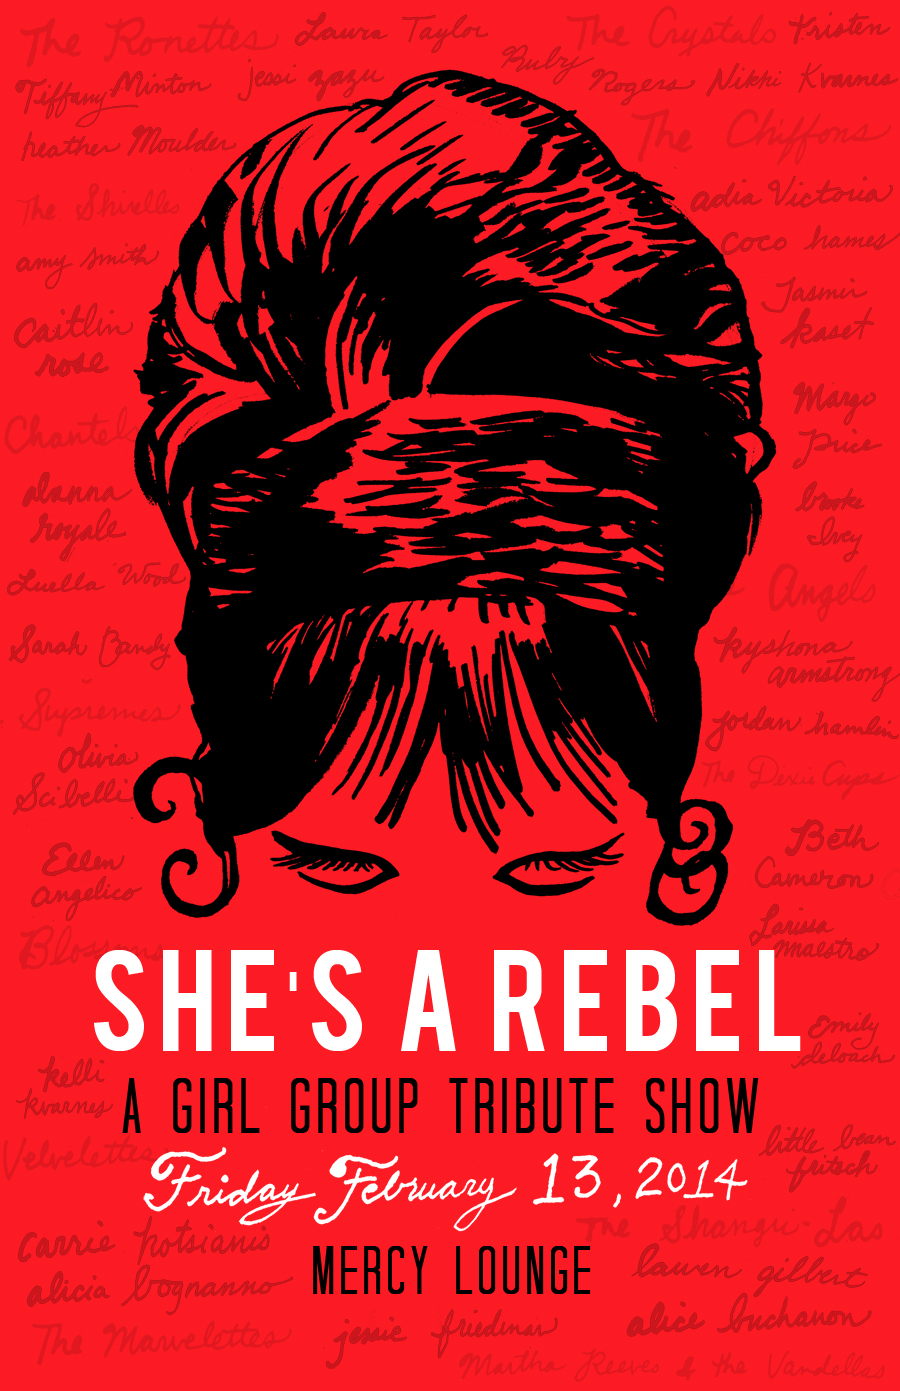 She's A Rebel: A Girl Group Tribute Show